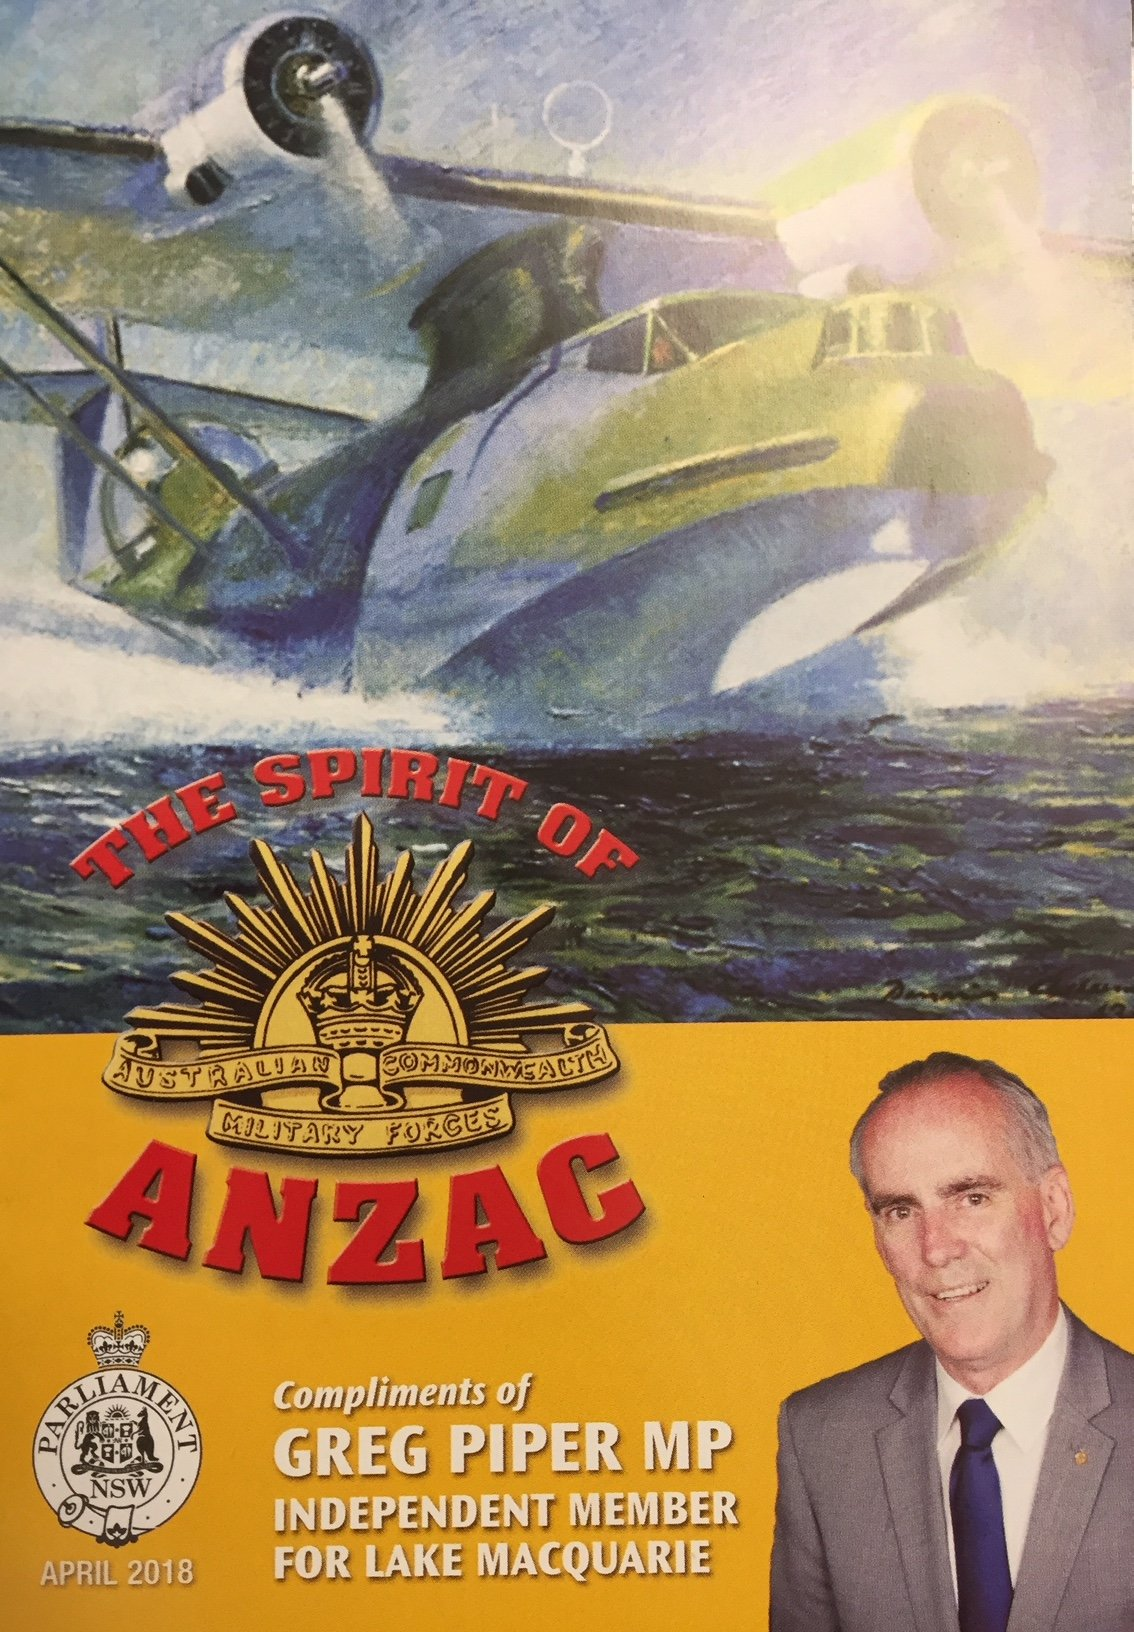 Keep an eye out for my annual Spirit of Anzac booklet which should be arriving in your letterbox this week. It contains a full guide to this year's Anzac Day services in Lake Macquarie. This year's cover features a fantastic painting of a Catalina flying boat taking off from Rathmines in 1943.